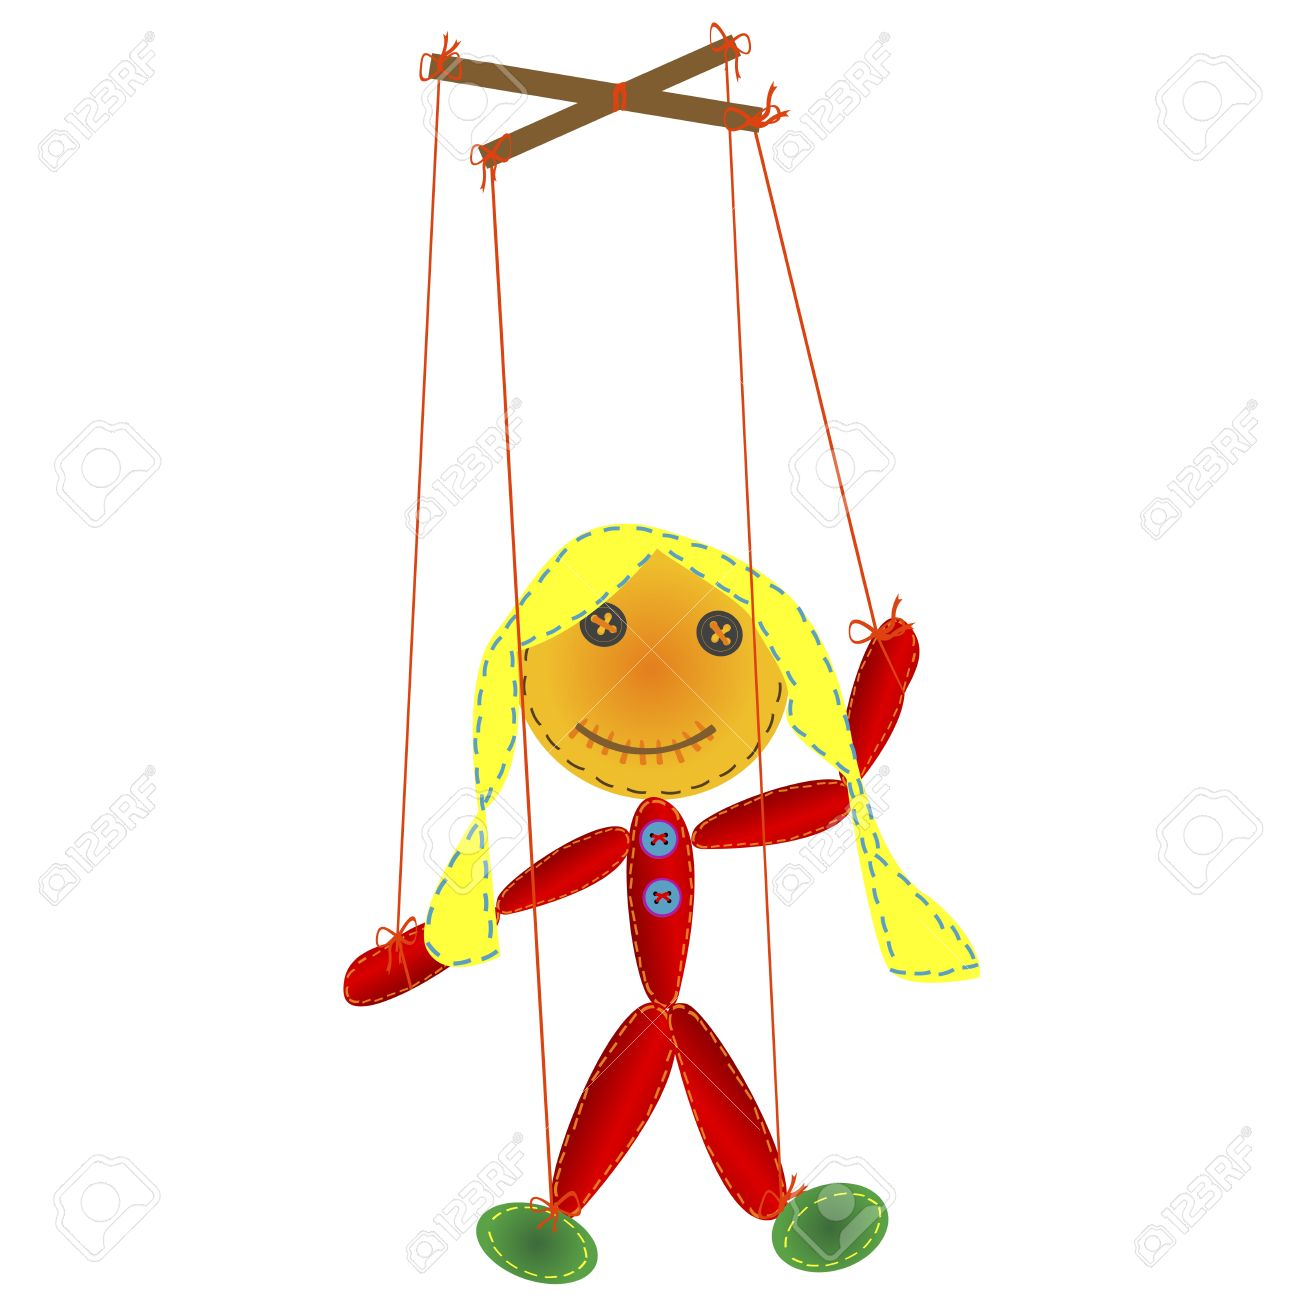 Handmade marionette, puppet on a string Stock Vector - 11878413